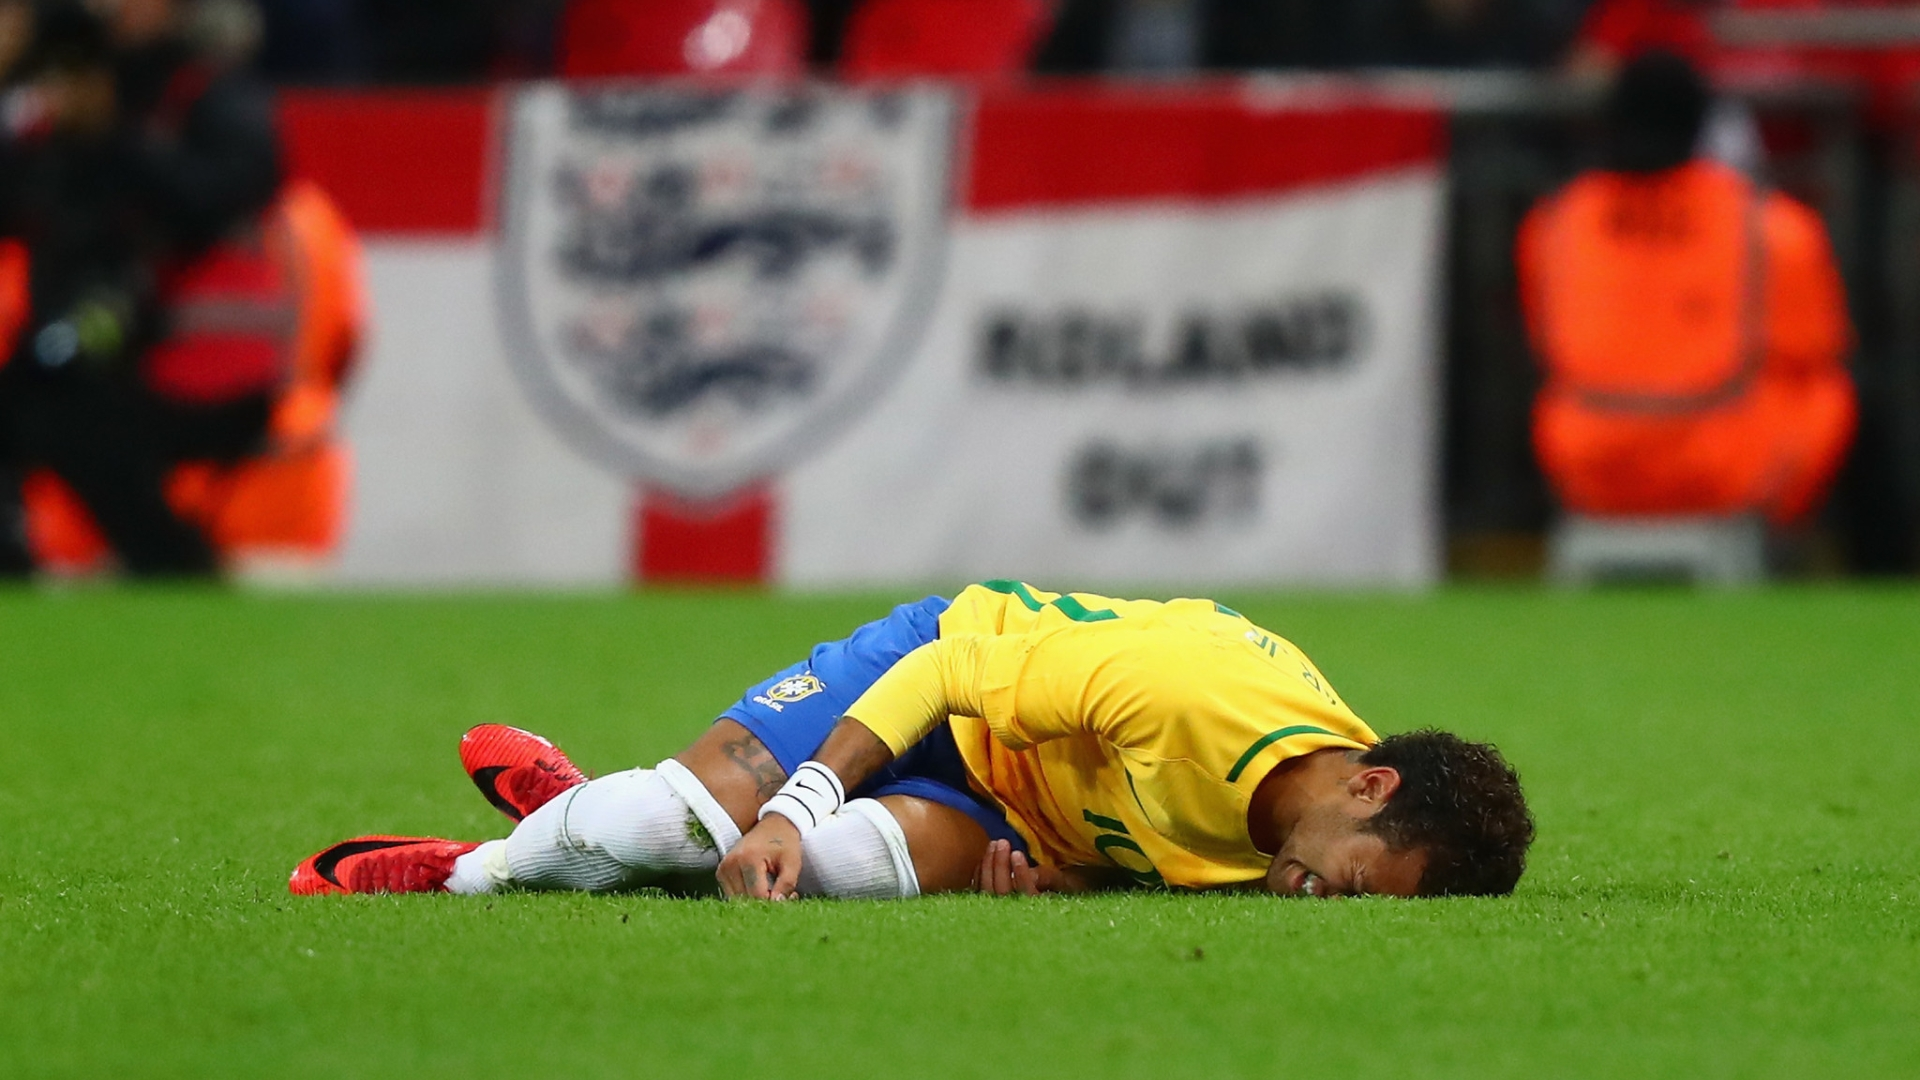 f9cd69f6 Brazil without Neymar, Spain's striker dilemma and the best of the ...